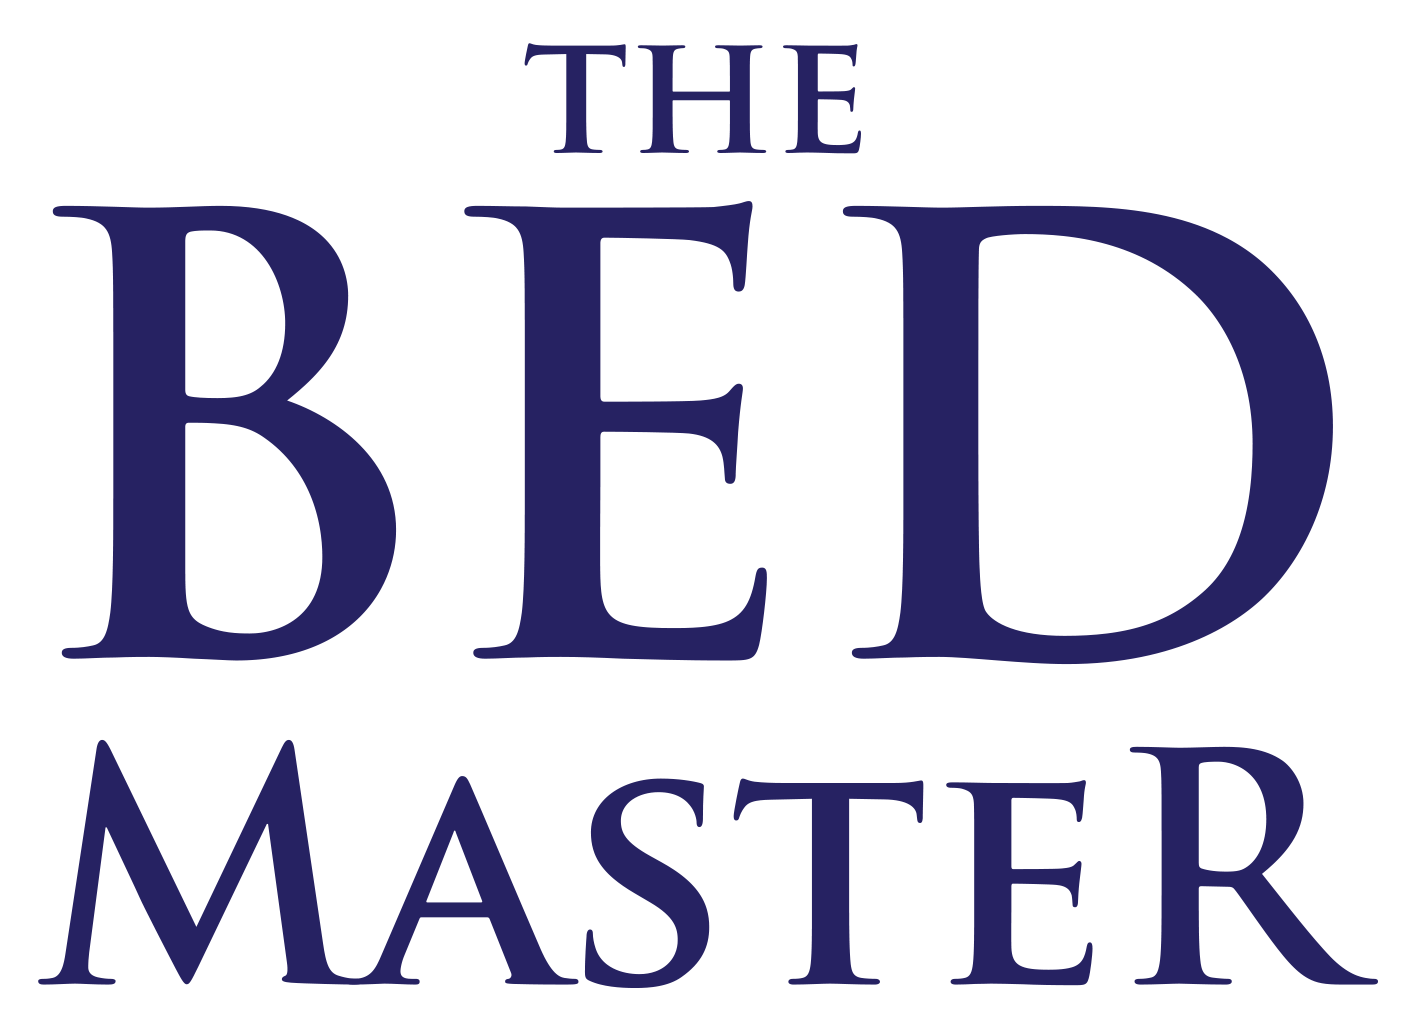 The Bed Master